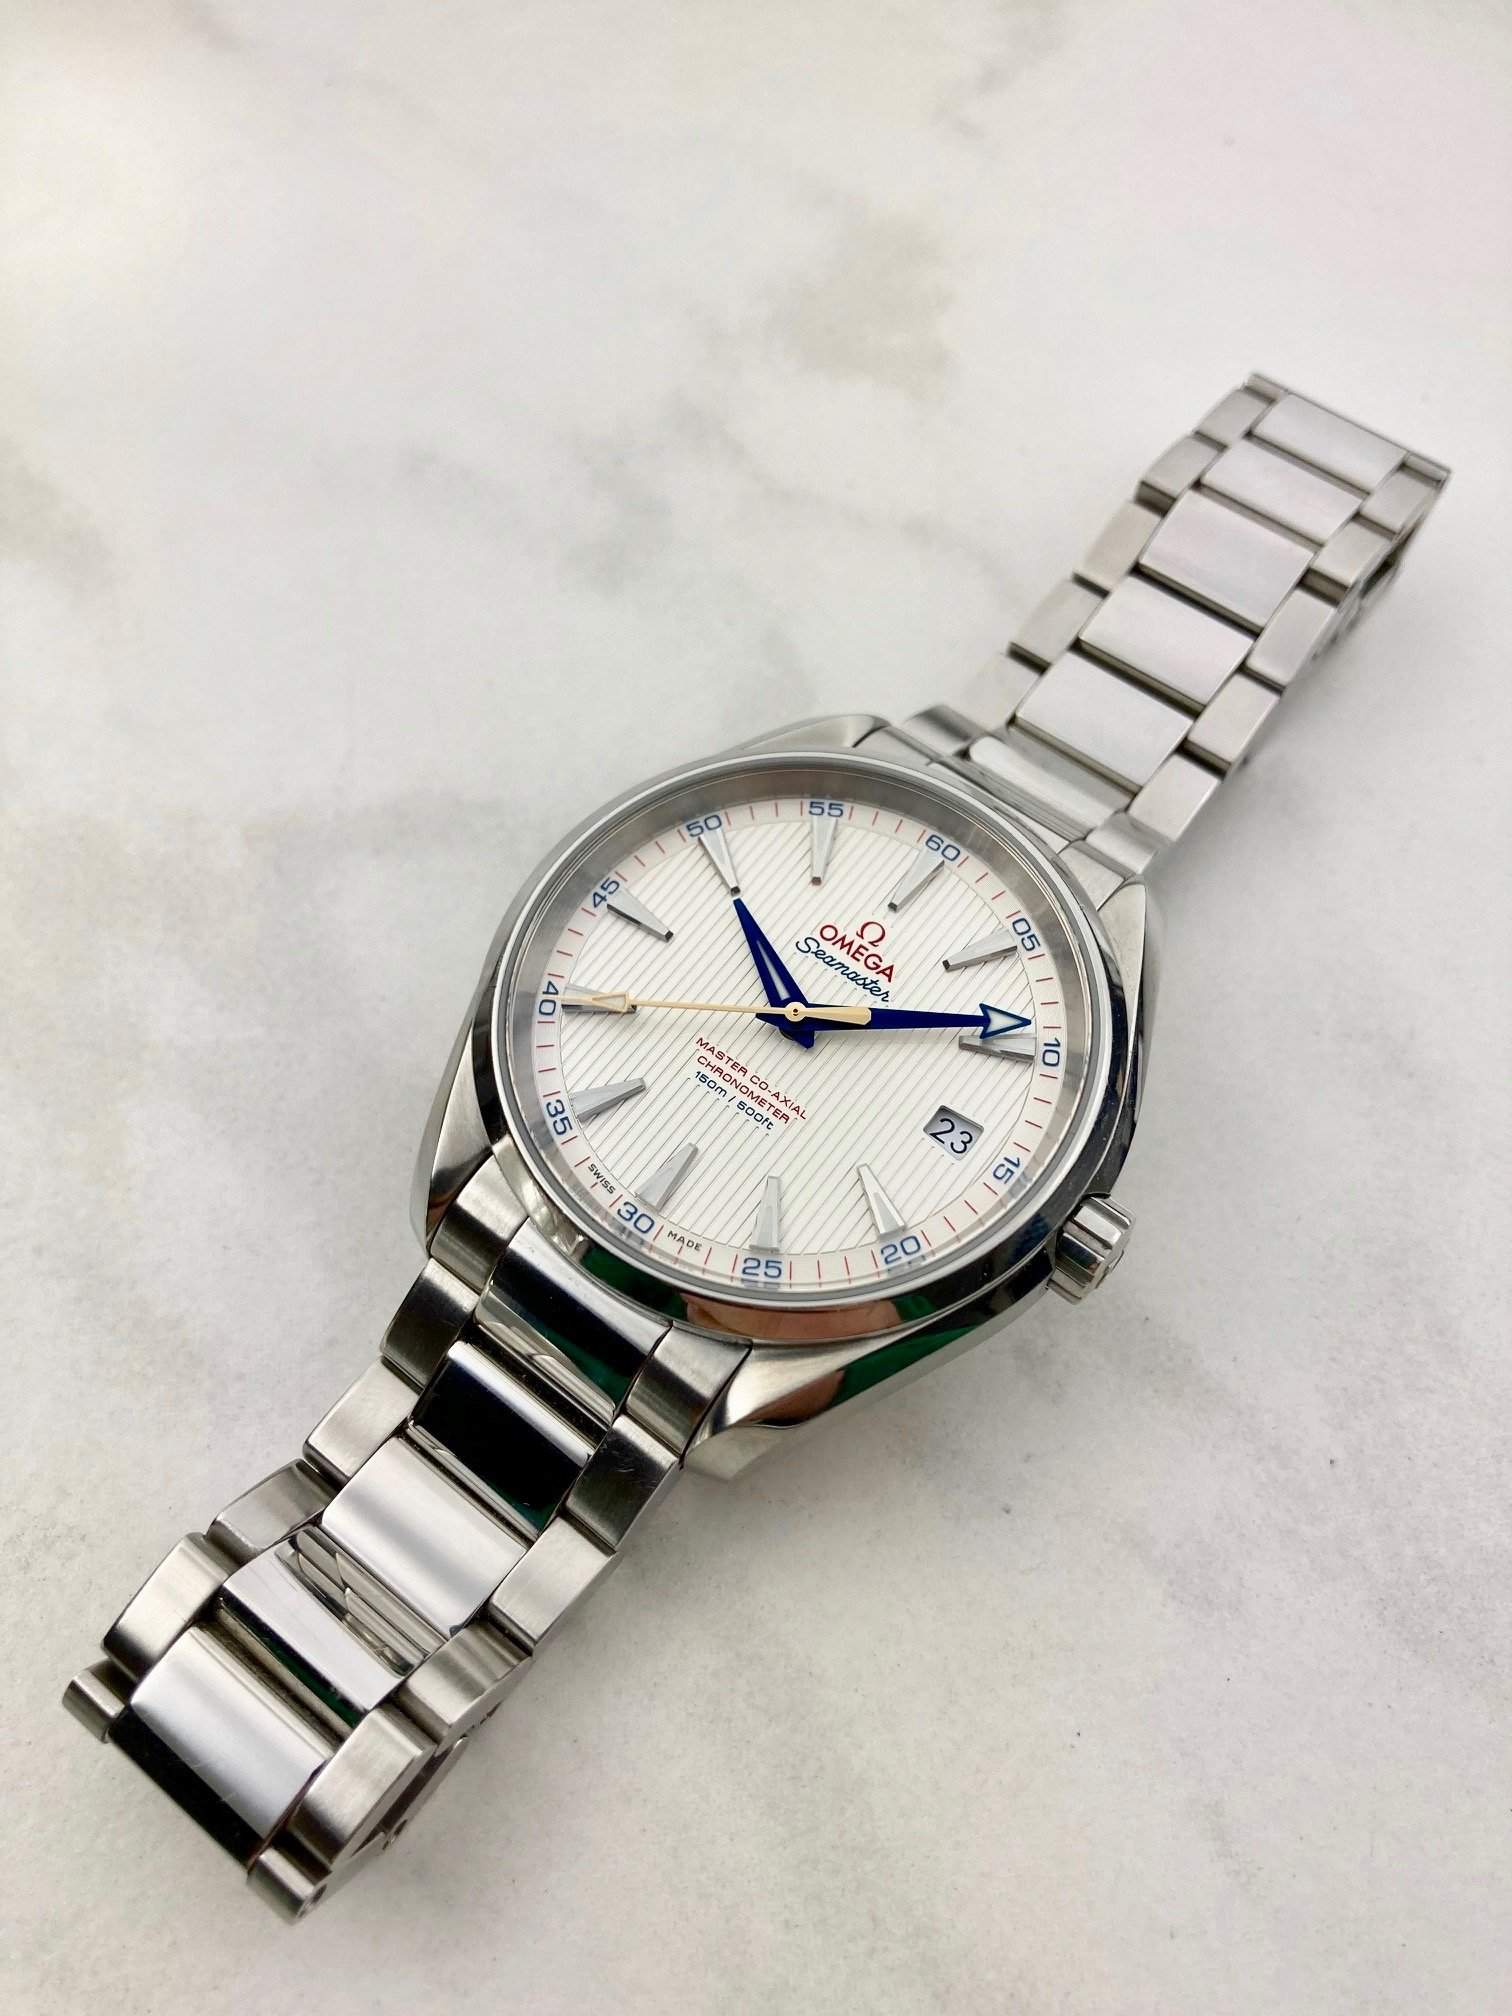 Omega's special Seamaster golf editions